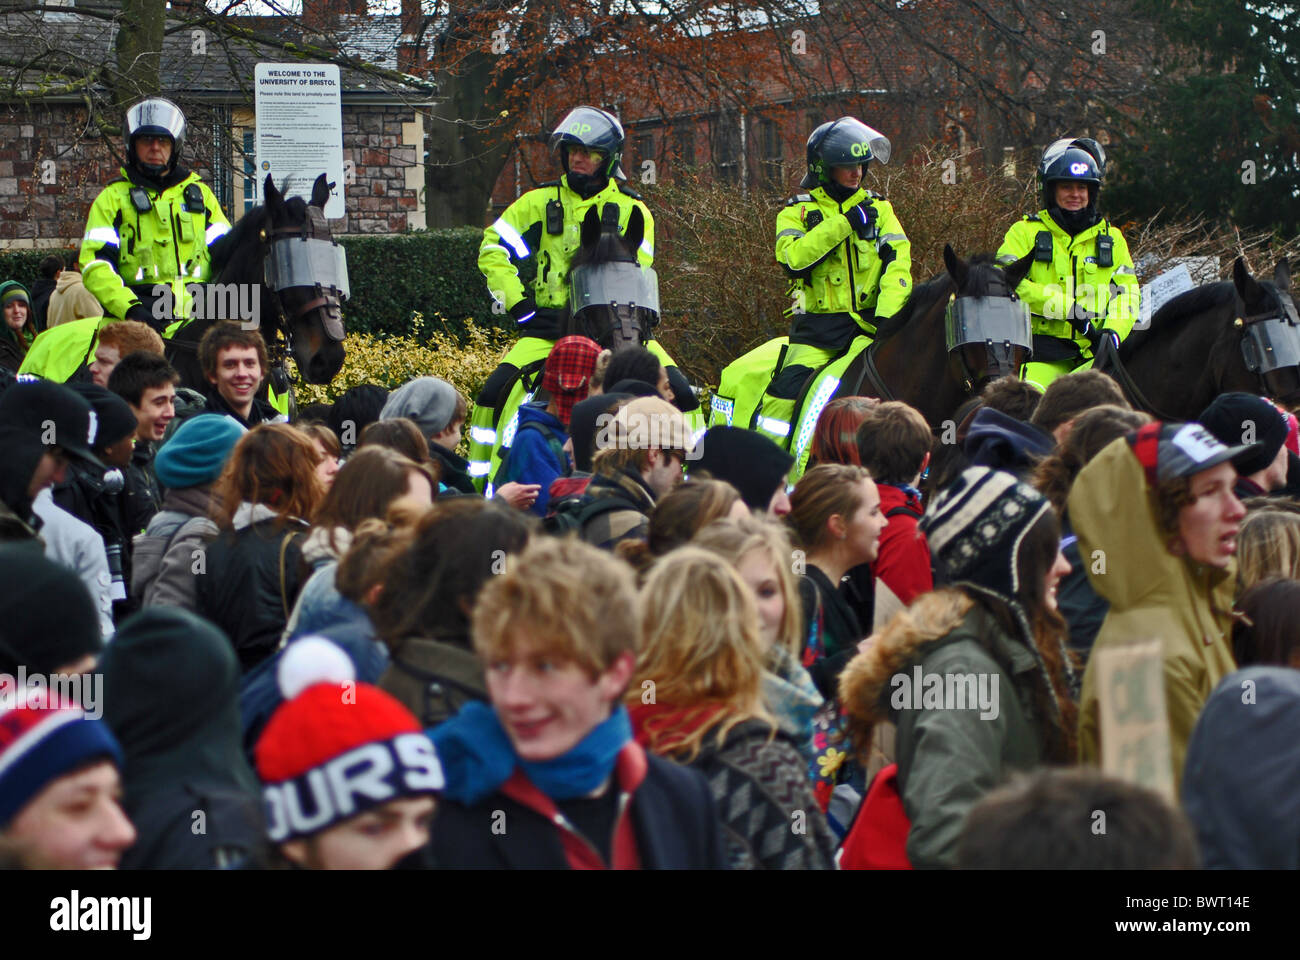 Police and students protesting over rising tuition fees, Bristol University - Stock Image